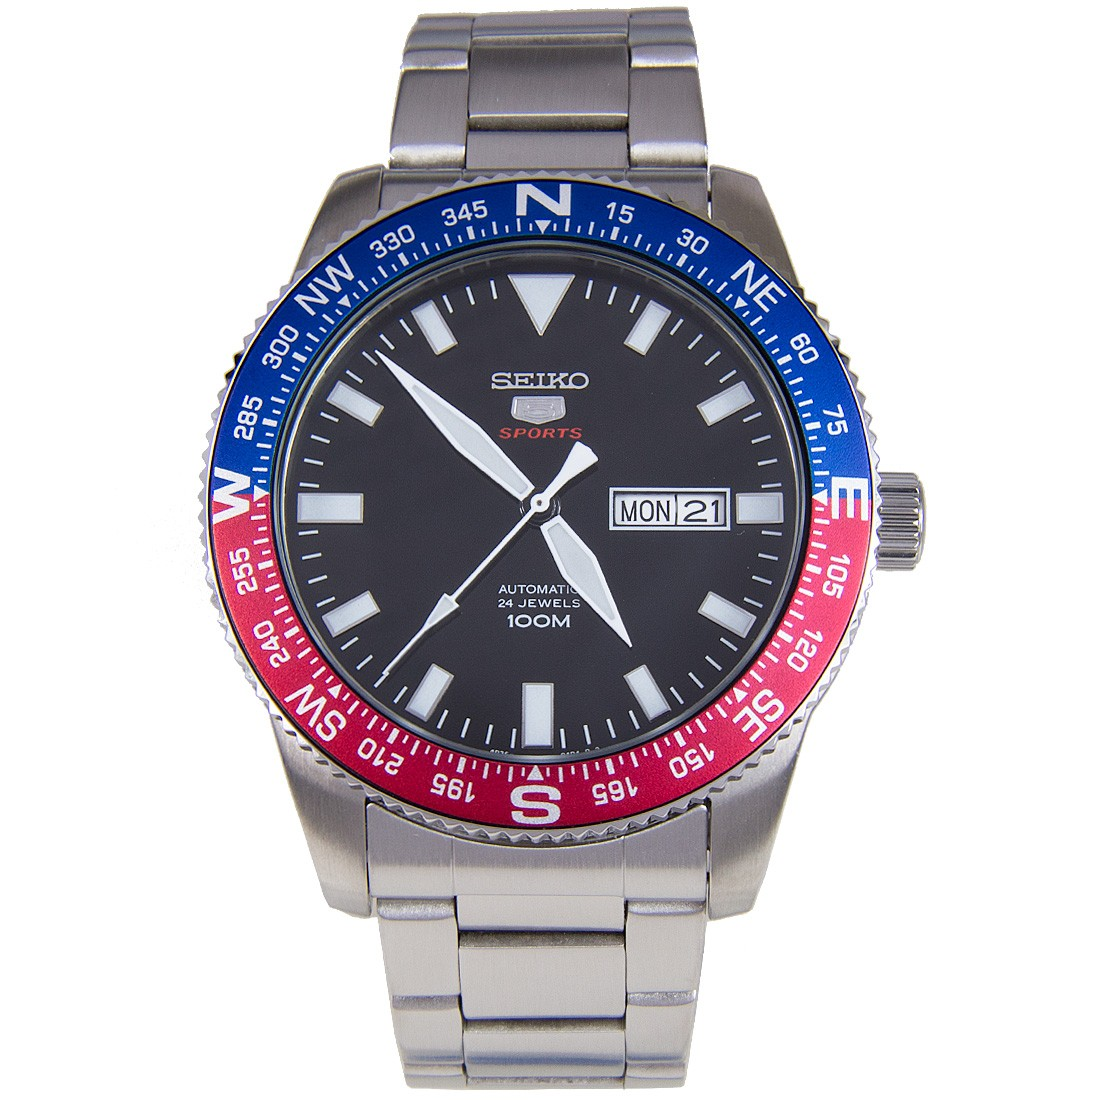 Seiko 5 Sports Automatic Watch SRP661K1